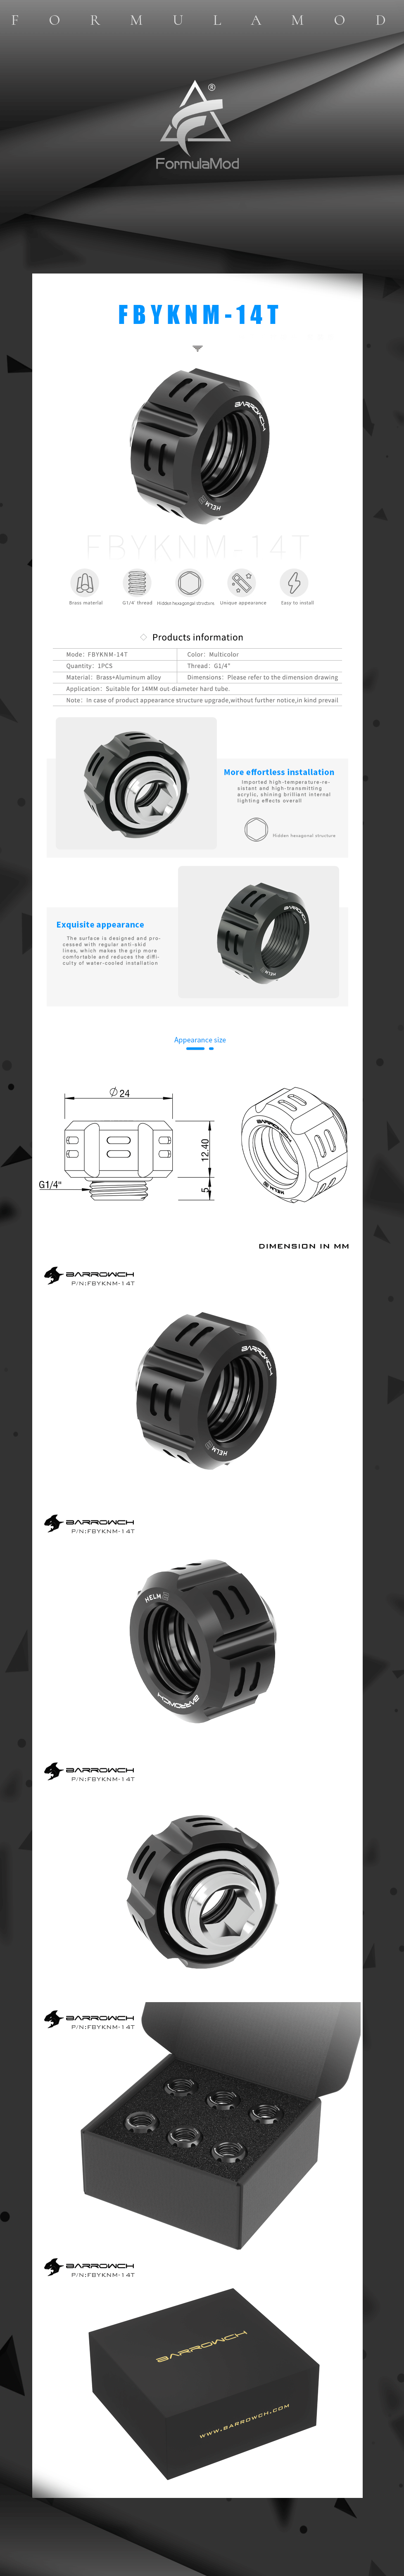 Barrowch Hard Fitting, Helm 2 Series For OD 14mm, Adapter For Water Cooling System, 1 set/6pcs, FBYKNM-14T